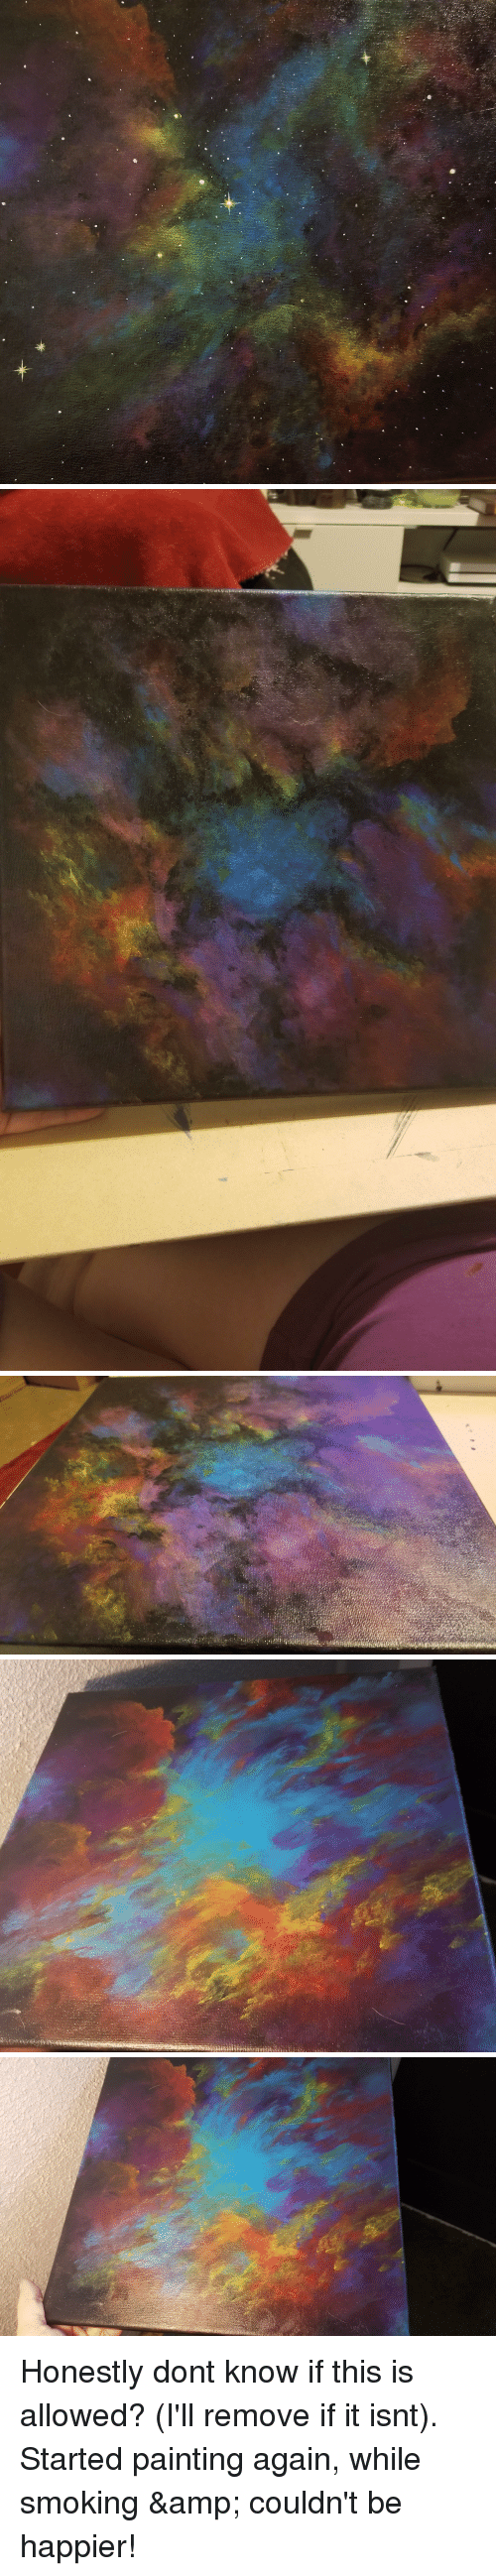 Smoking, Weed, and Depression: Honestly dont know if this is allowed? (I'll remove if it isnt). Started painting again, while smoking & couldn't be happier!